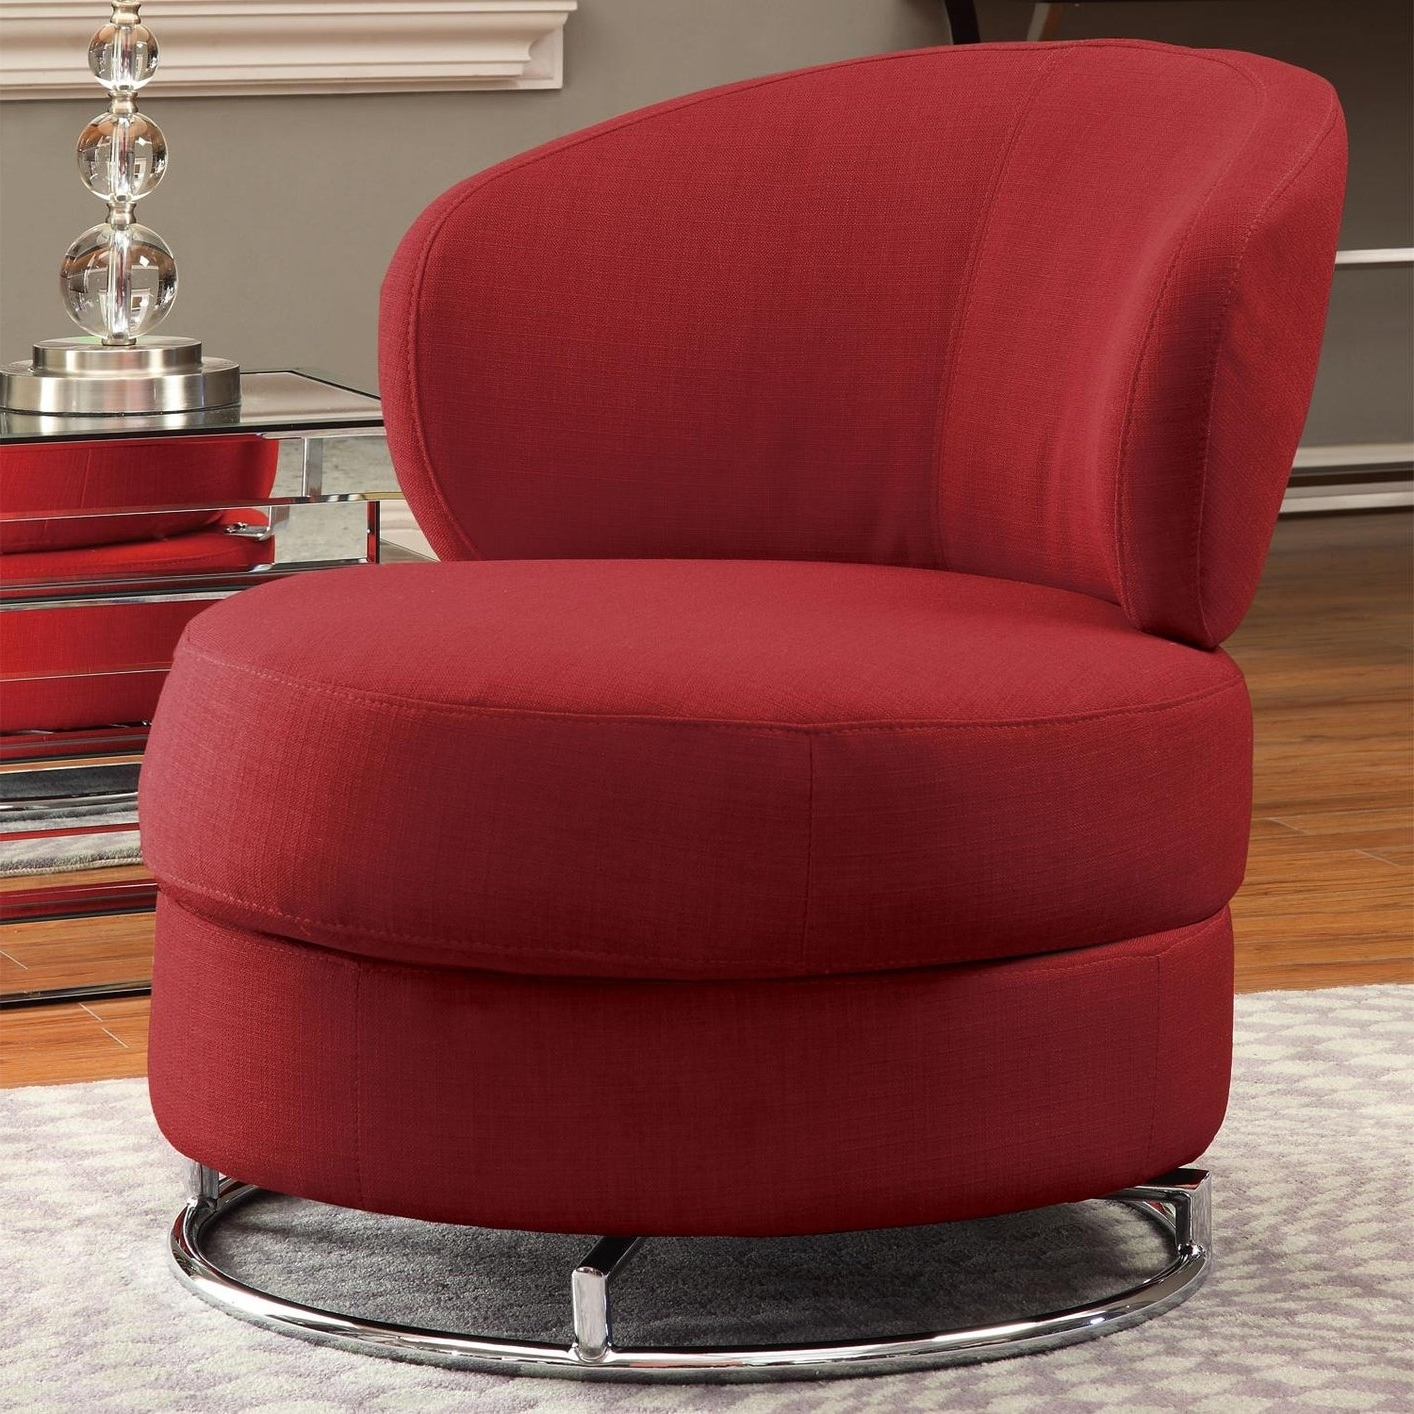 Newest Swivel Sofa Chairs Pertaining To Red Fabric Swivel Chair – Steal A Sofa Furniture Outlet Los Angeles Ca (View 20 of 20)